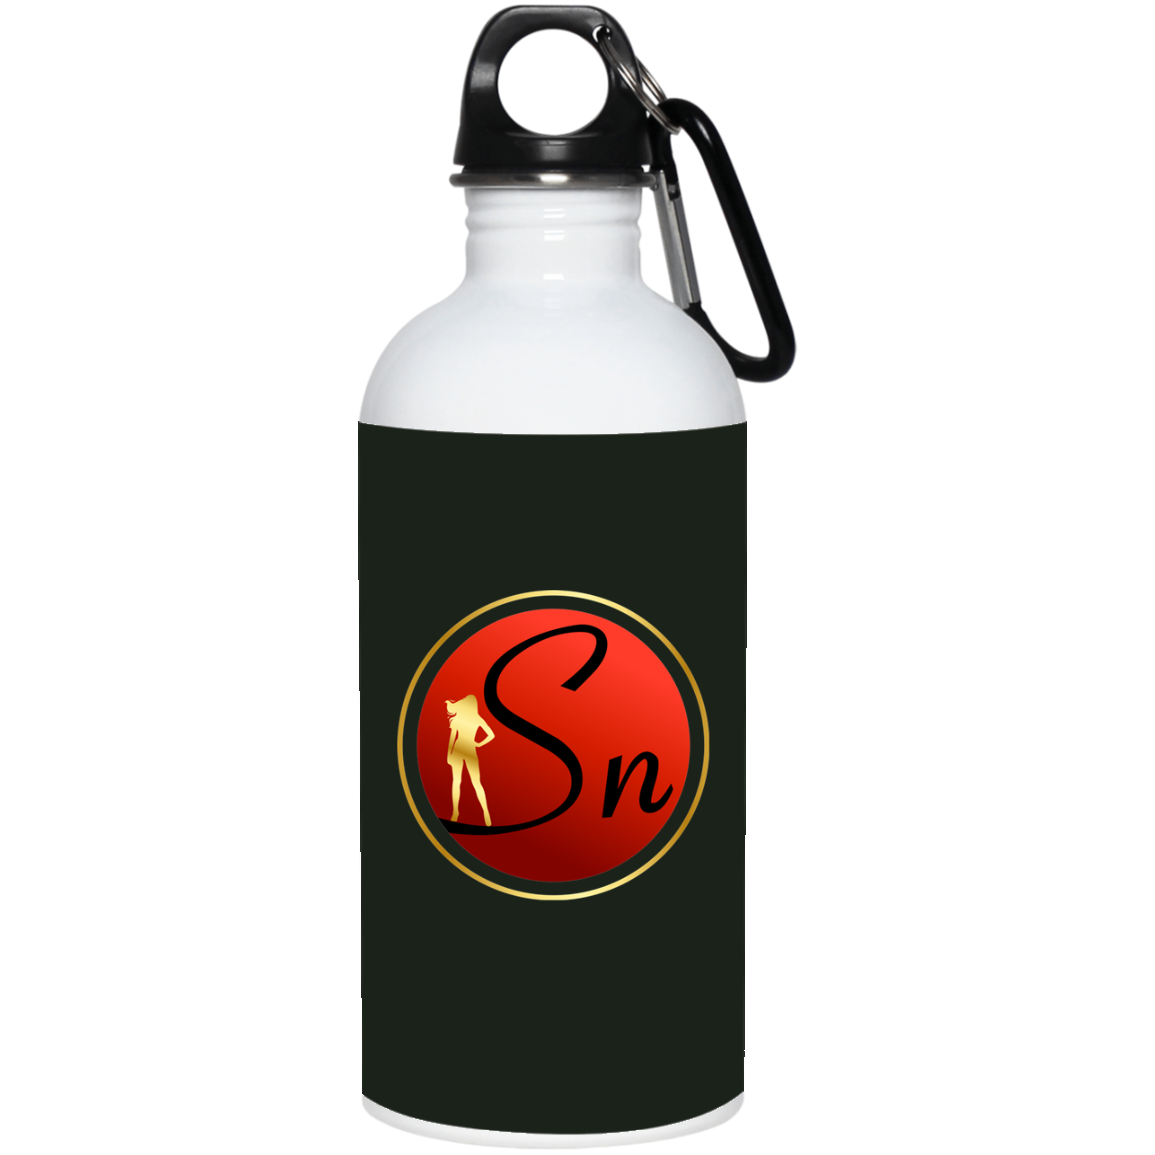 Saucy Nation Stainless Steel Water Bottle